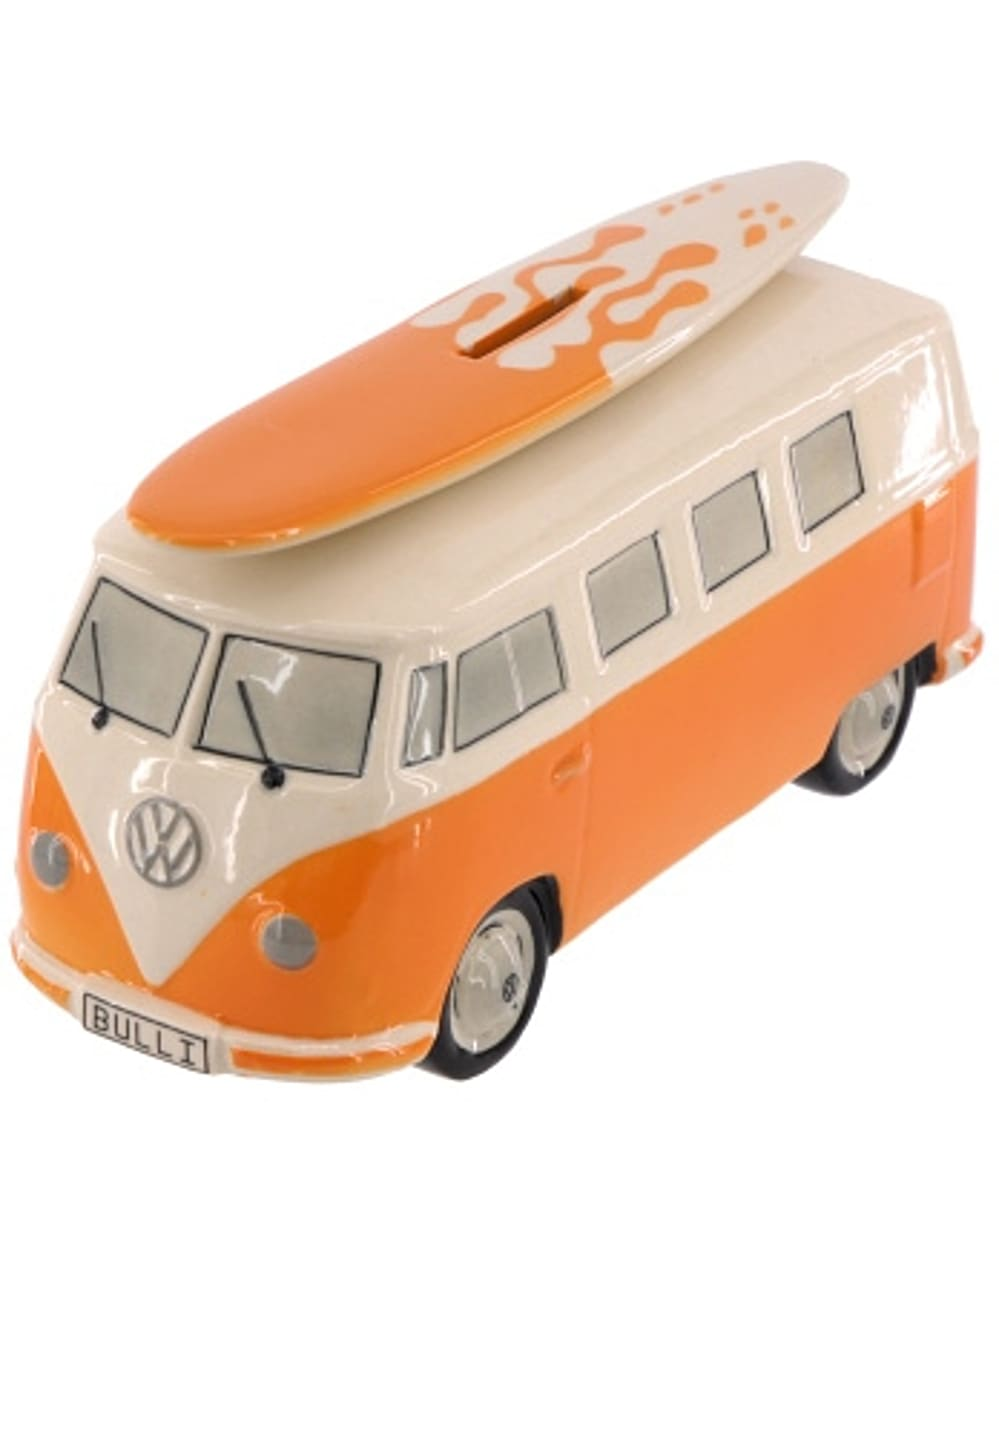 van one classic cars vw surf bulli t1 spardose accessoire orange planet sports. Black Bedroom Furniture Sets. Home Design Ideas